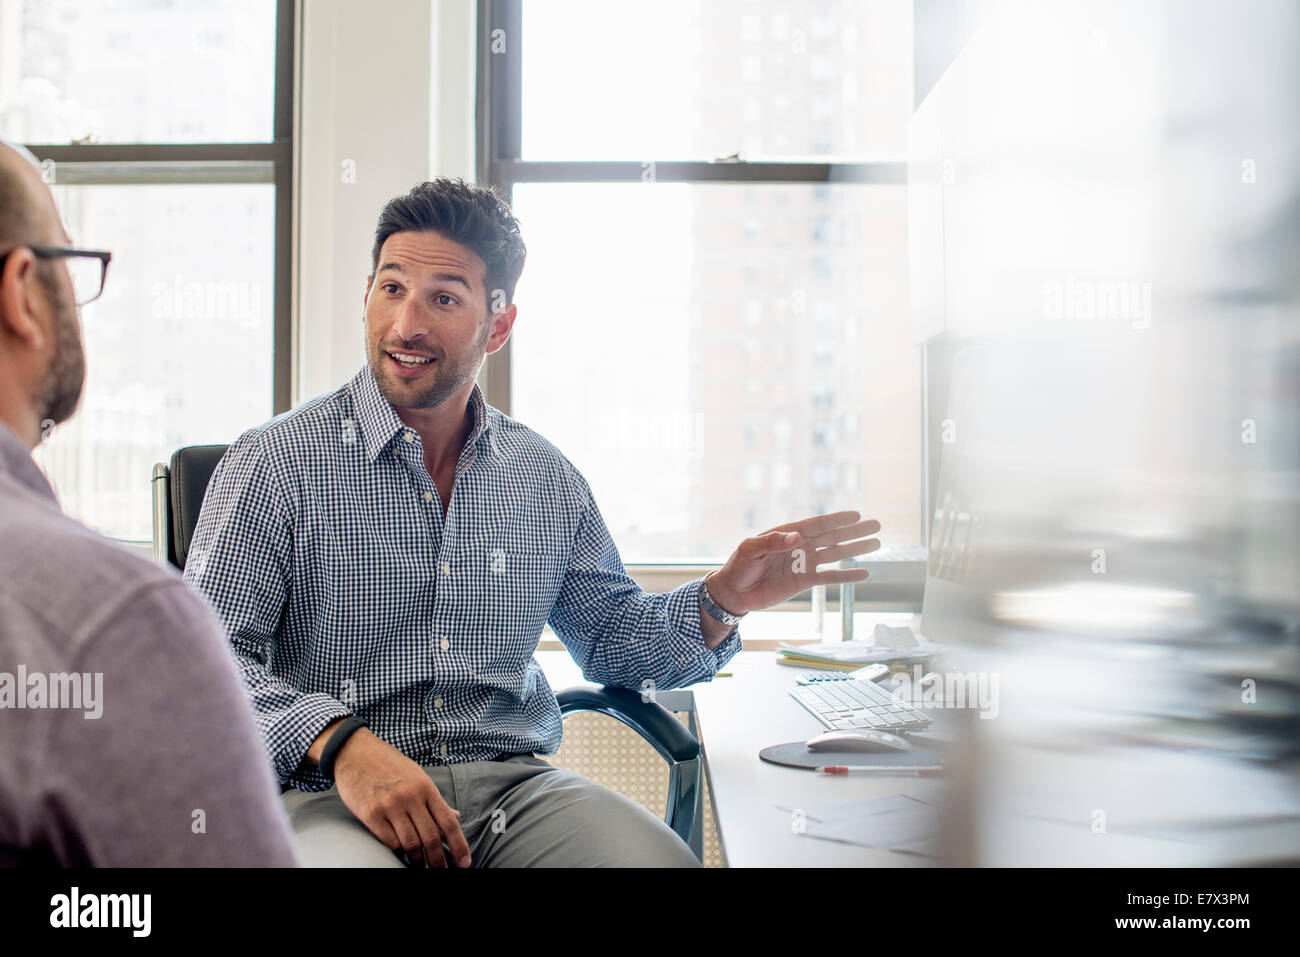 Office life. Two men seated talking and one using his hand to gesture towards a computer monitor. - Stock Image